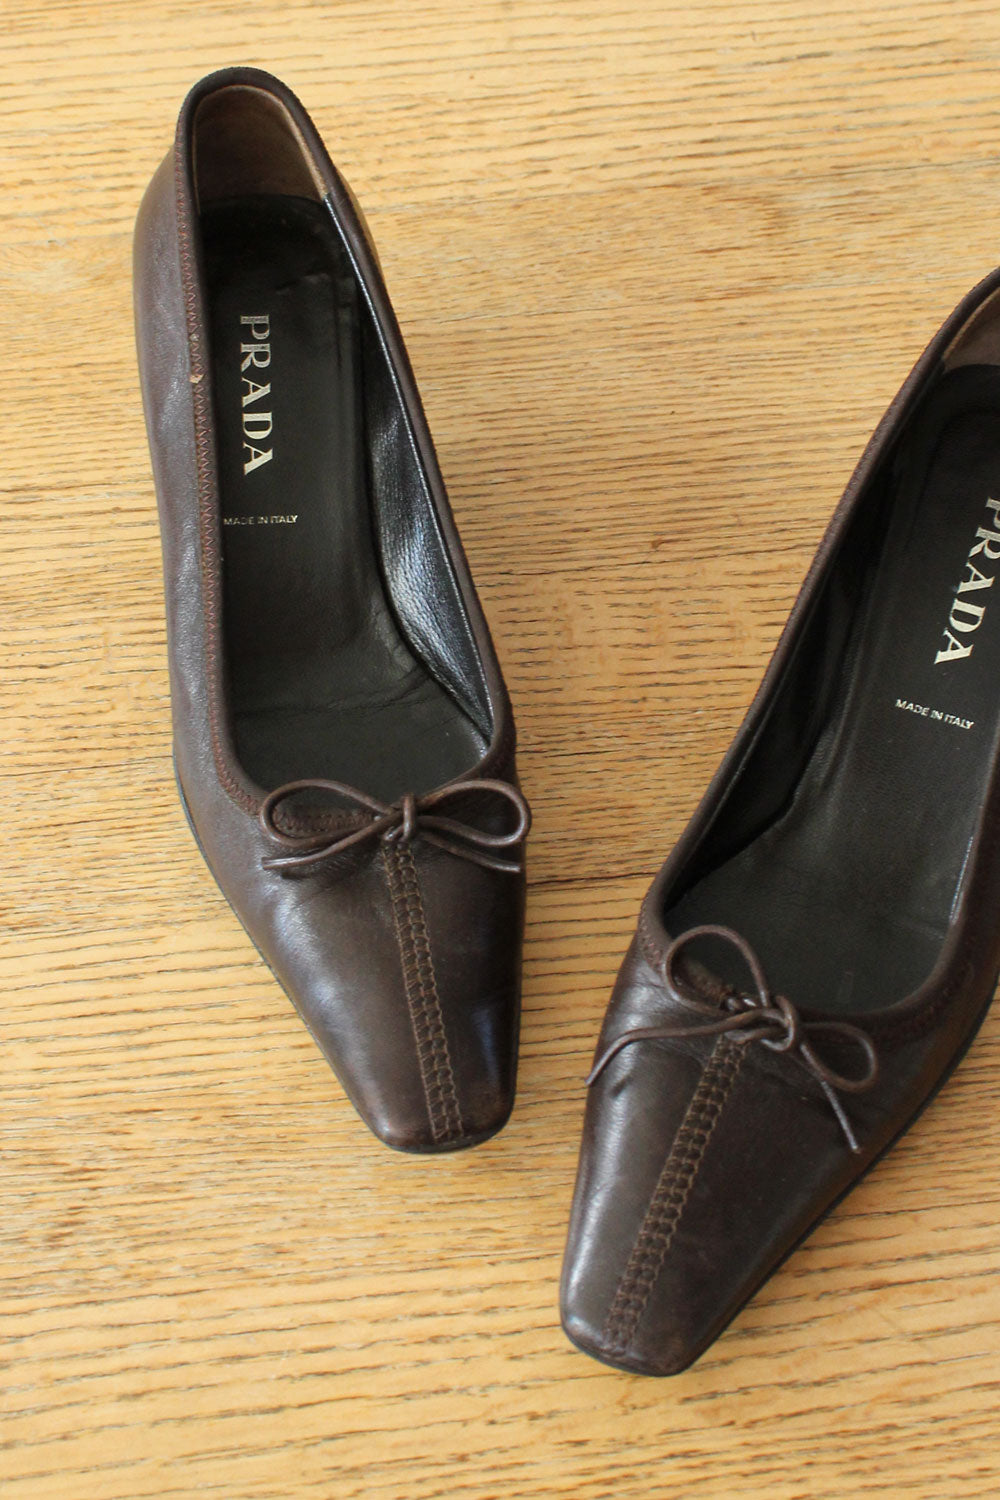 Prada Leather Bow Heels 5-5.5